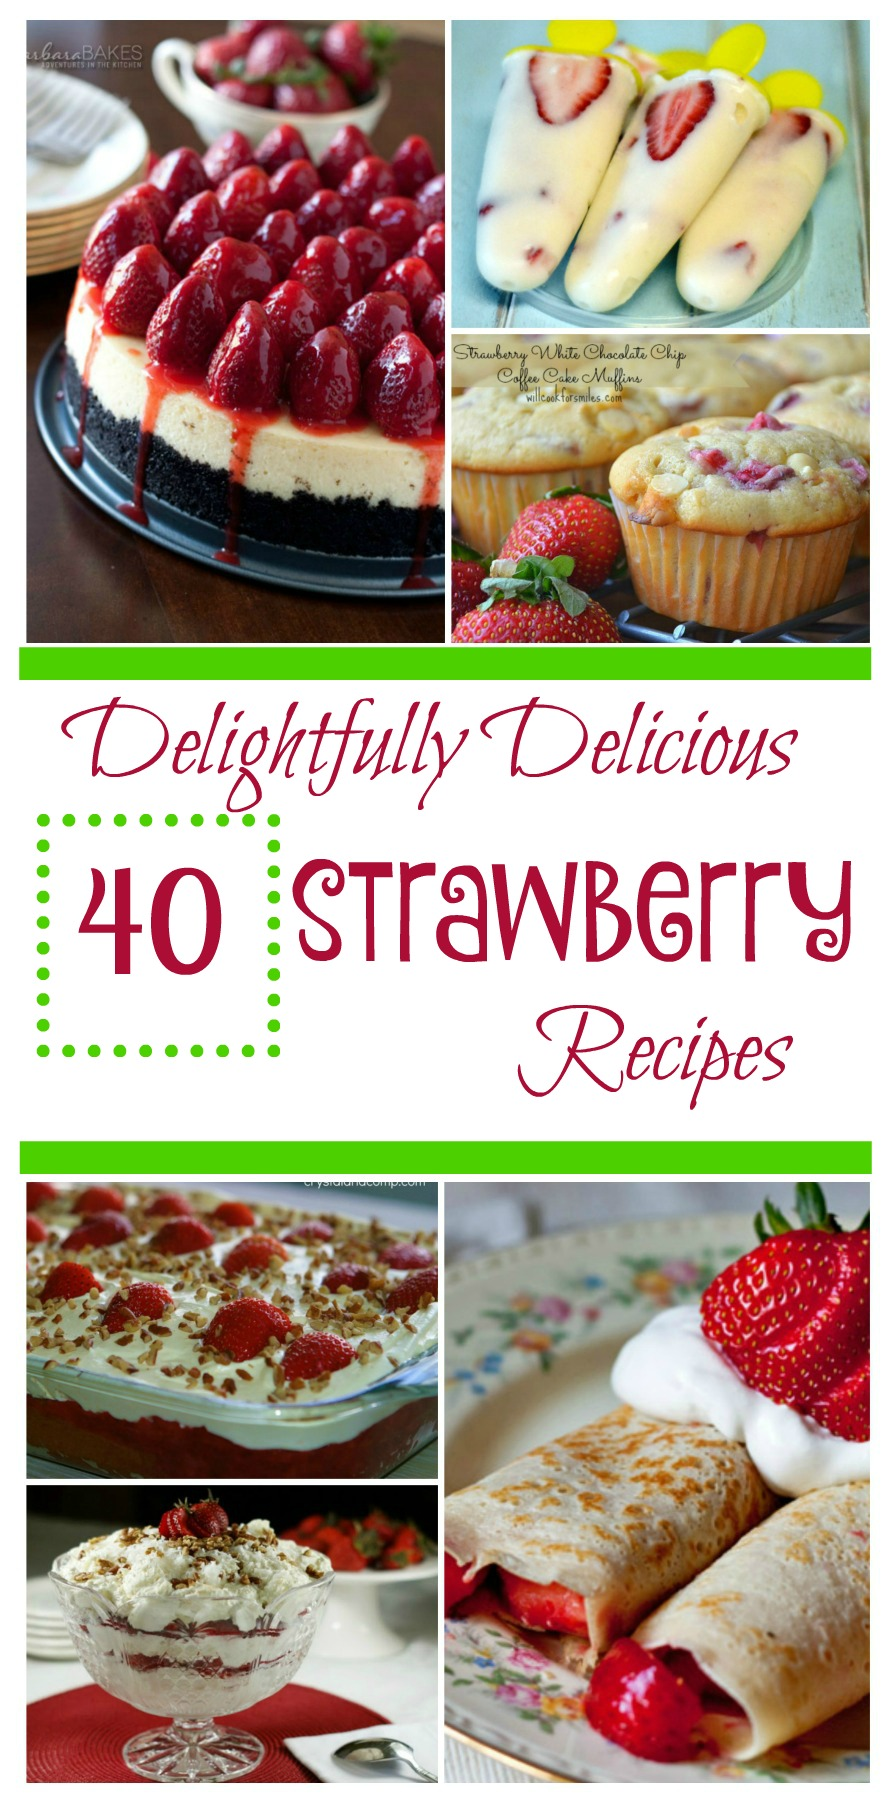 Looking for some new strawberry recipes? Check out our 40 Delightfully Delicious Strawberry Recipes Round Up here!